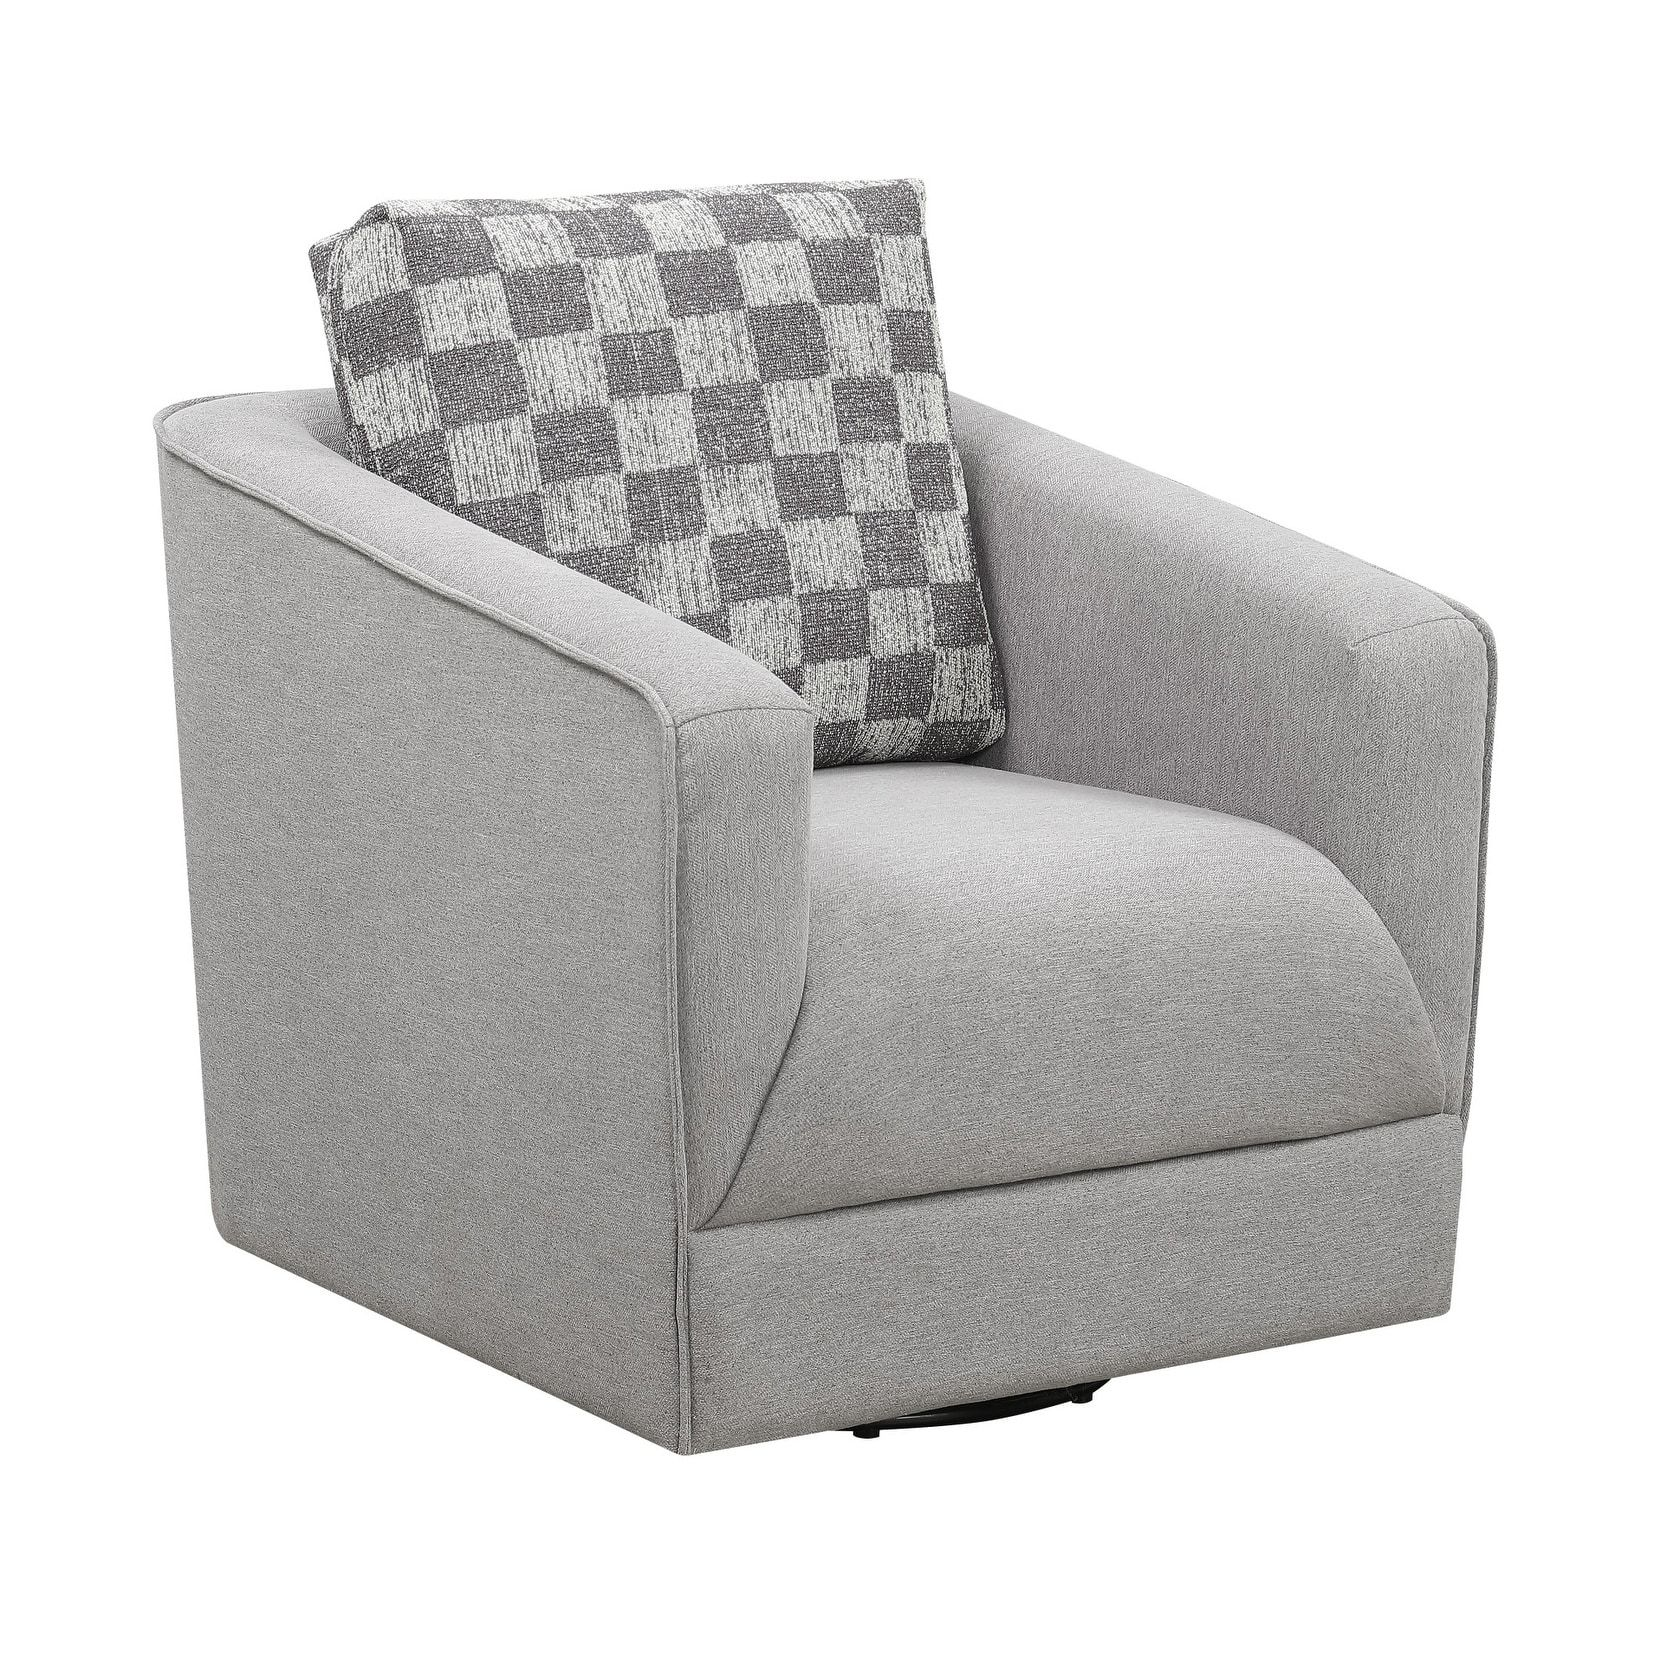 Best Emerald Home Adler Pewter And Charcoal Swivel Accent Chair 400 x 300